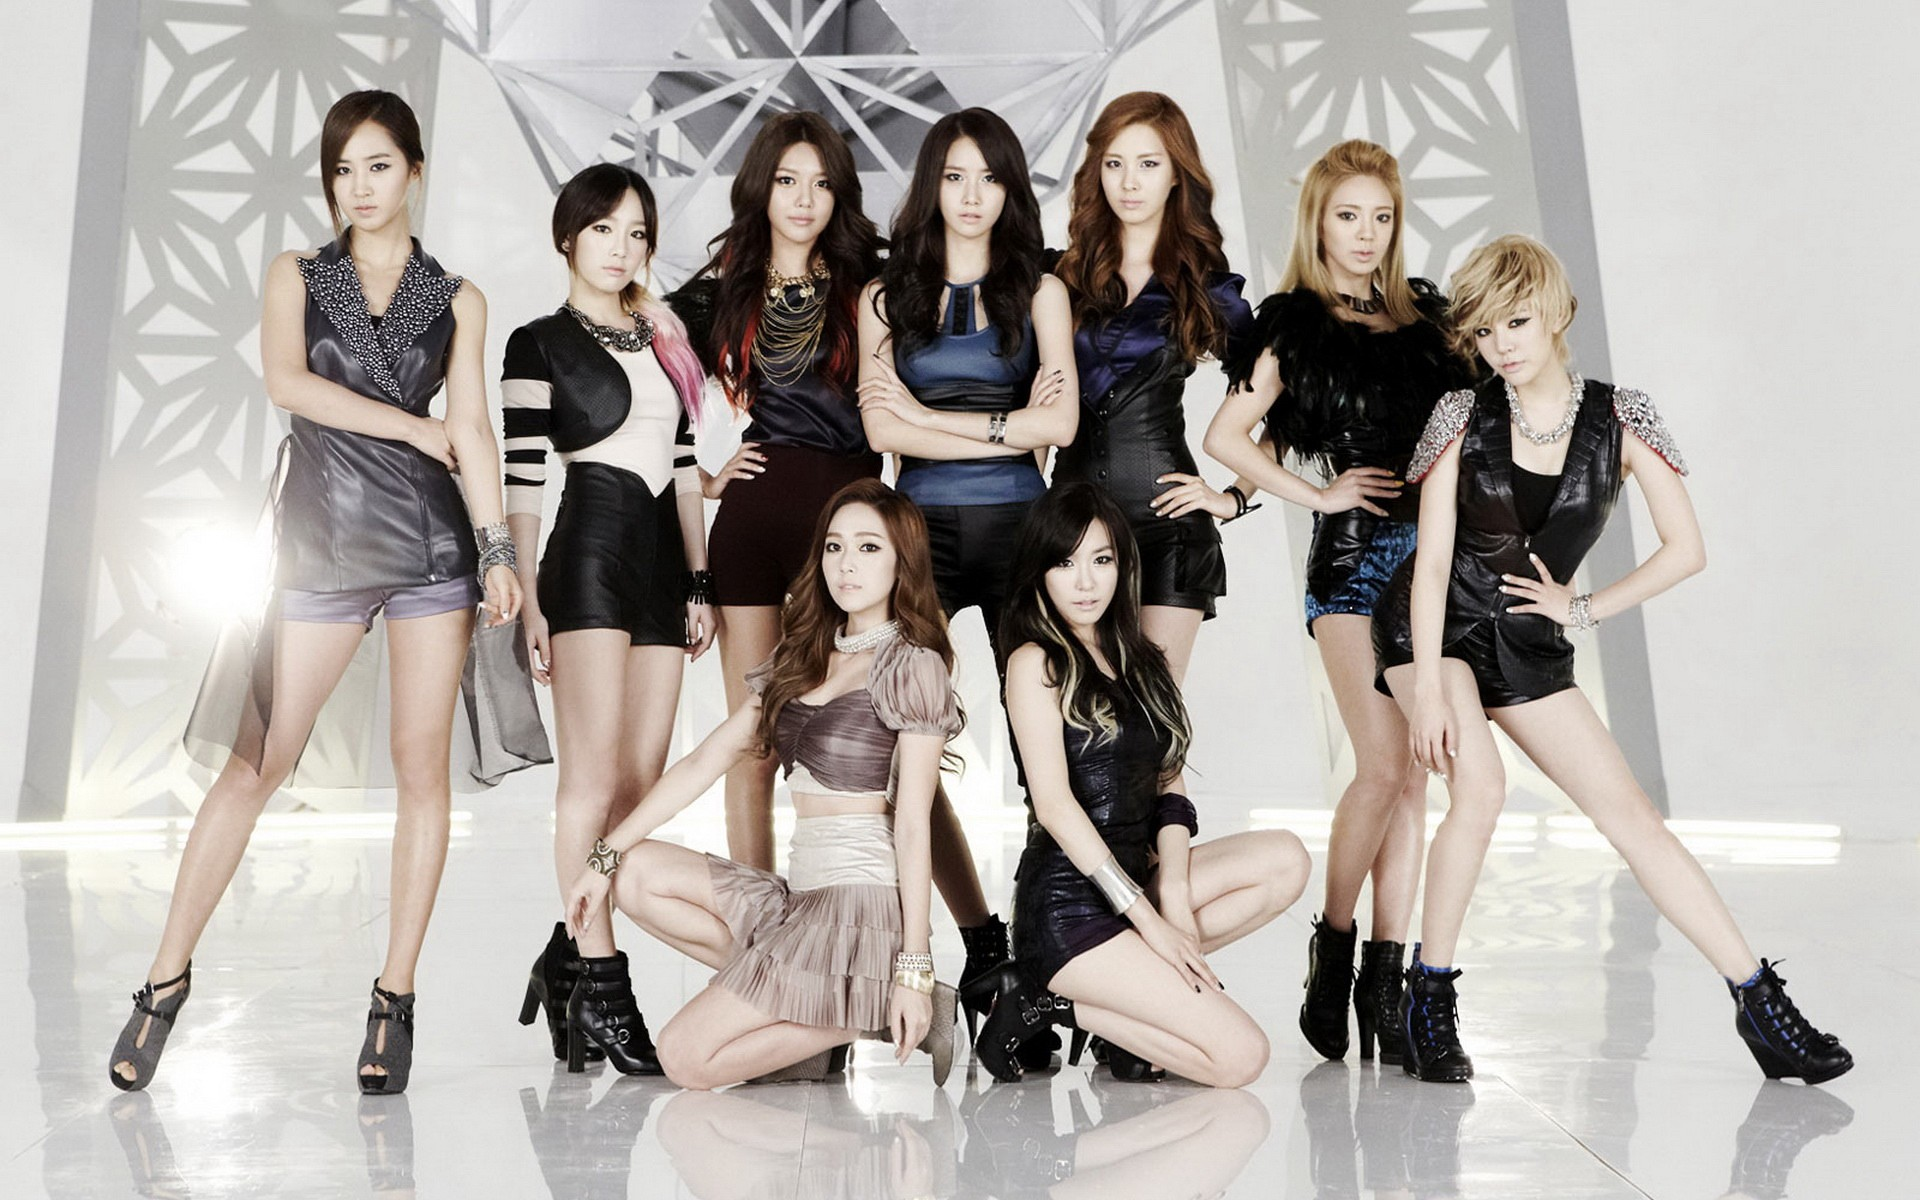 Best Girl Generation Wallpaper Android 24